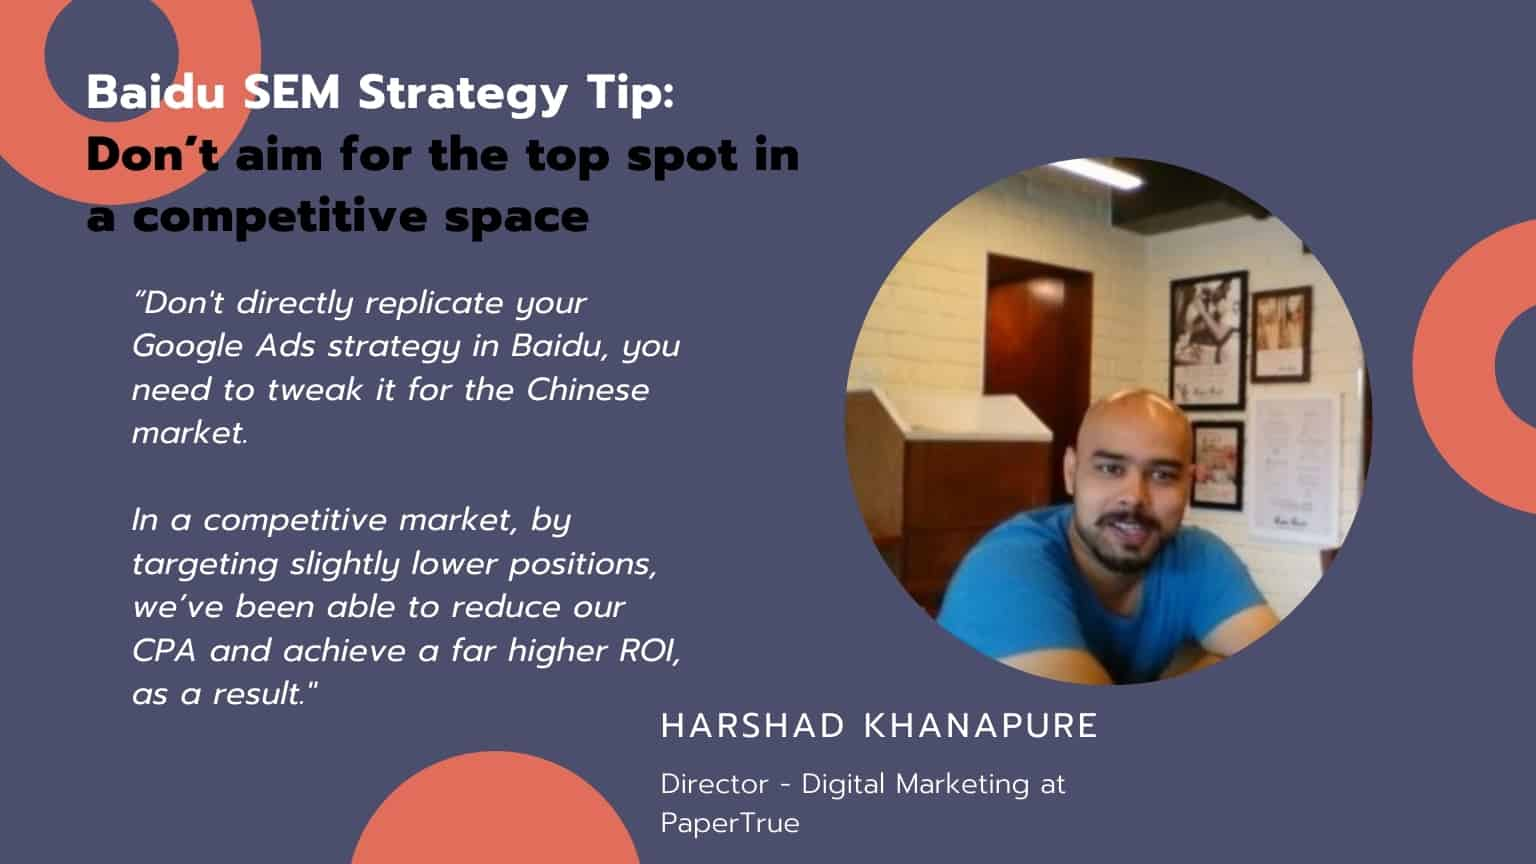 Baidu SEM strategy tip : Don't aim for the top spot in a competitive space